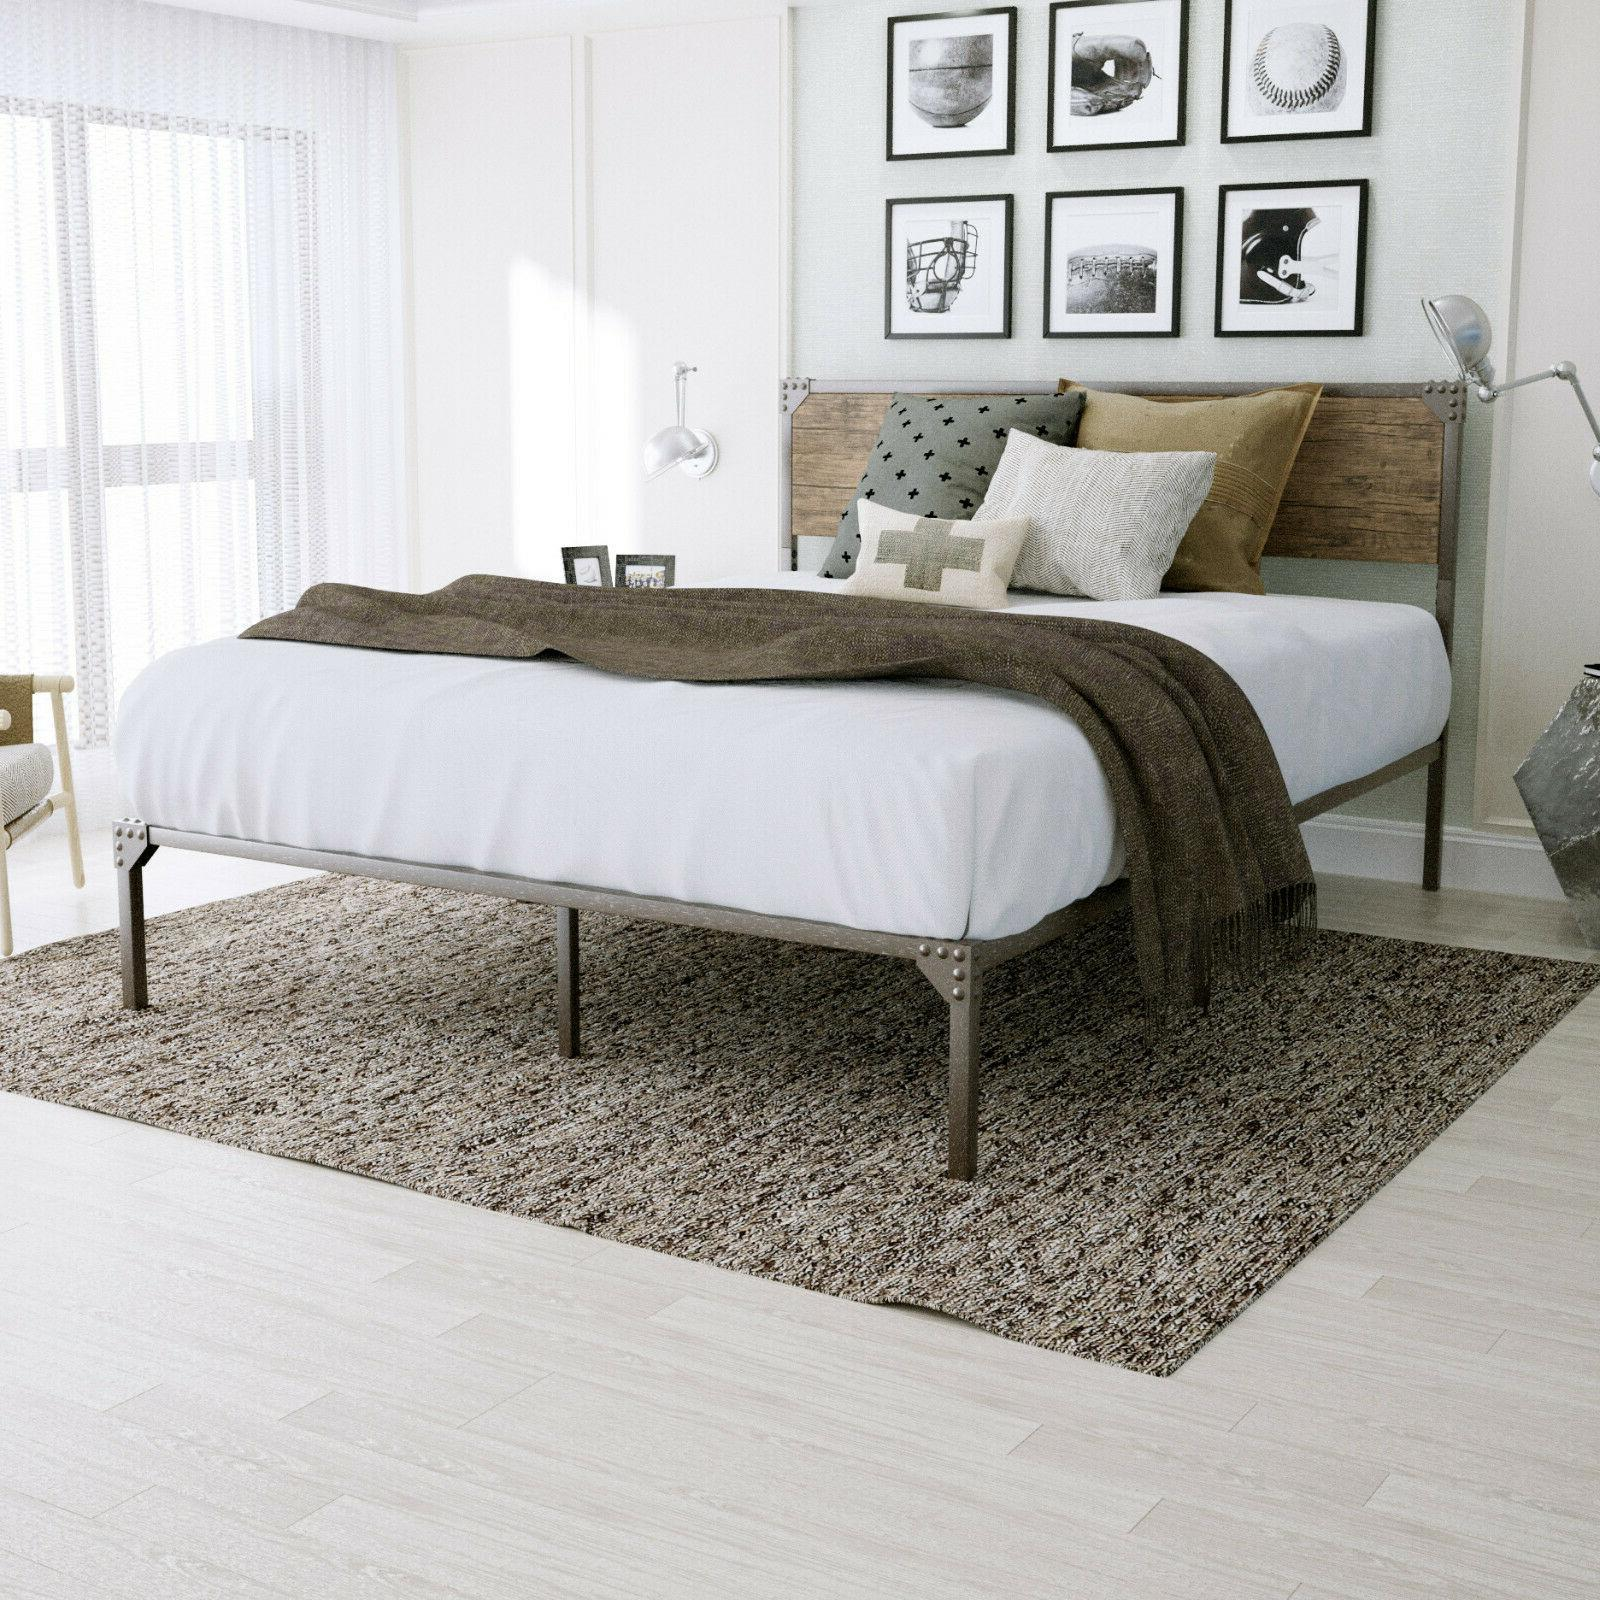 TWIN/FULL/QUEEN Size Metal Platform Bed Frame With Wood Head